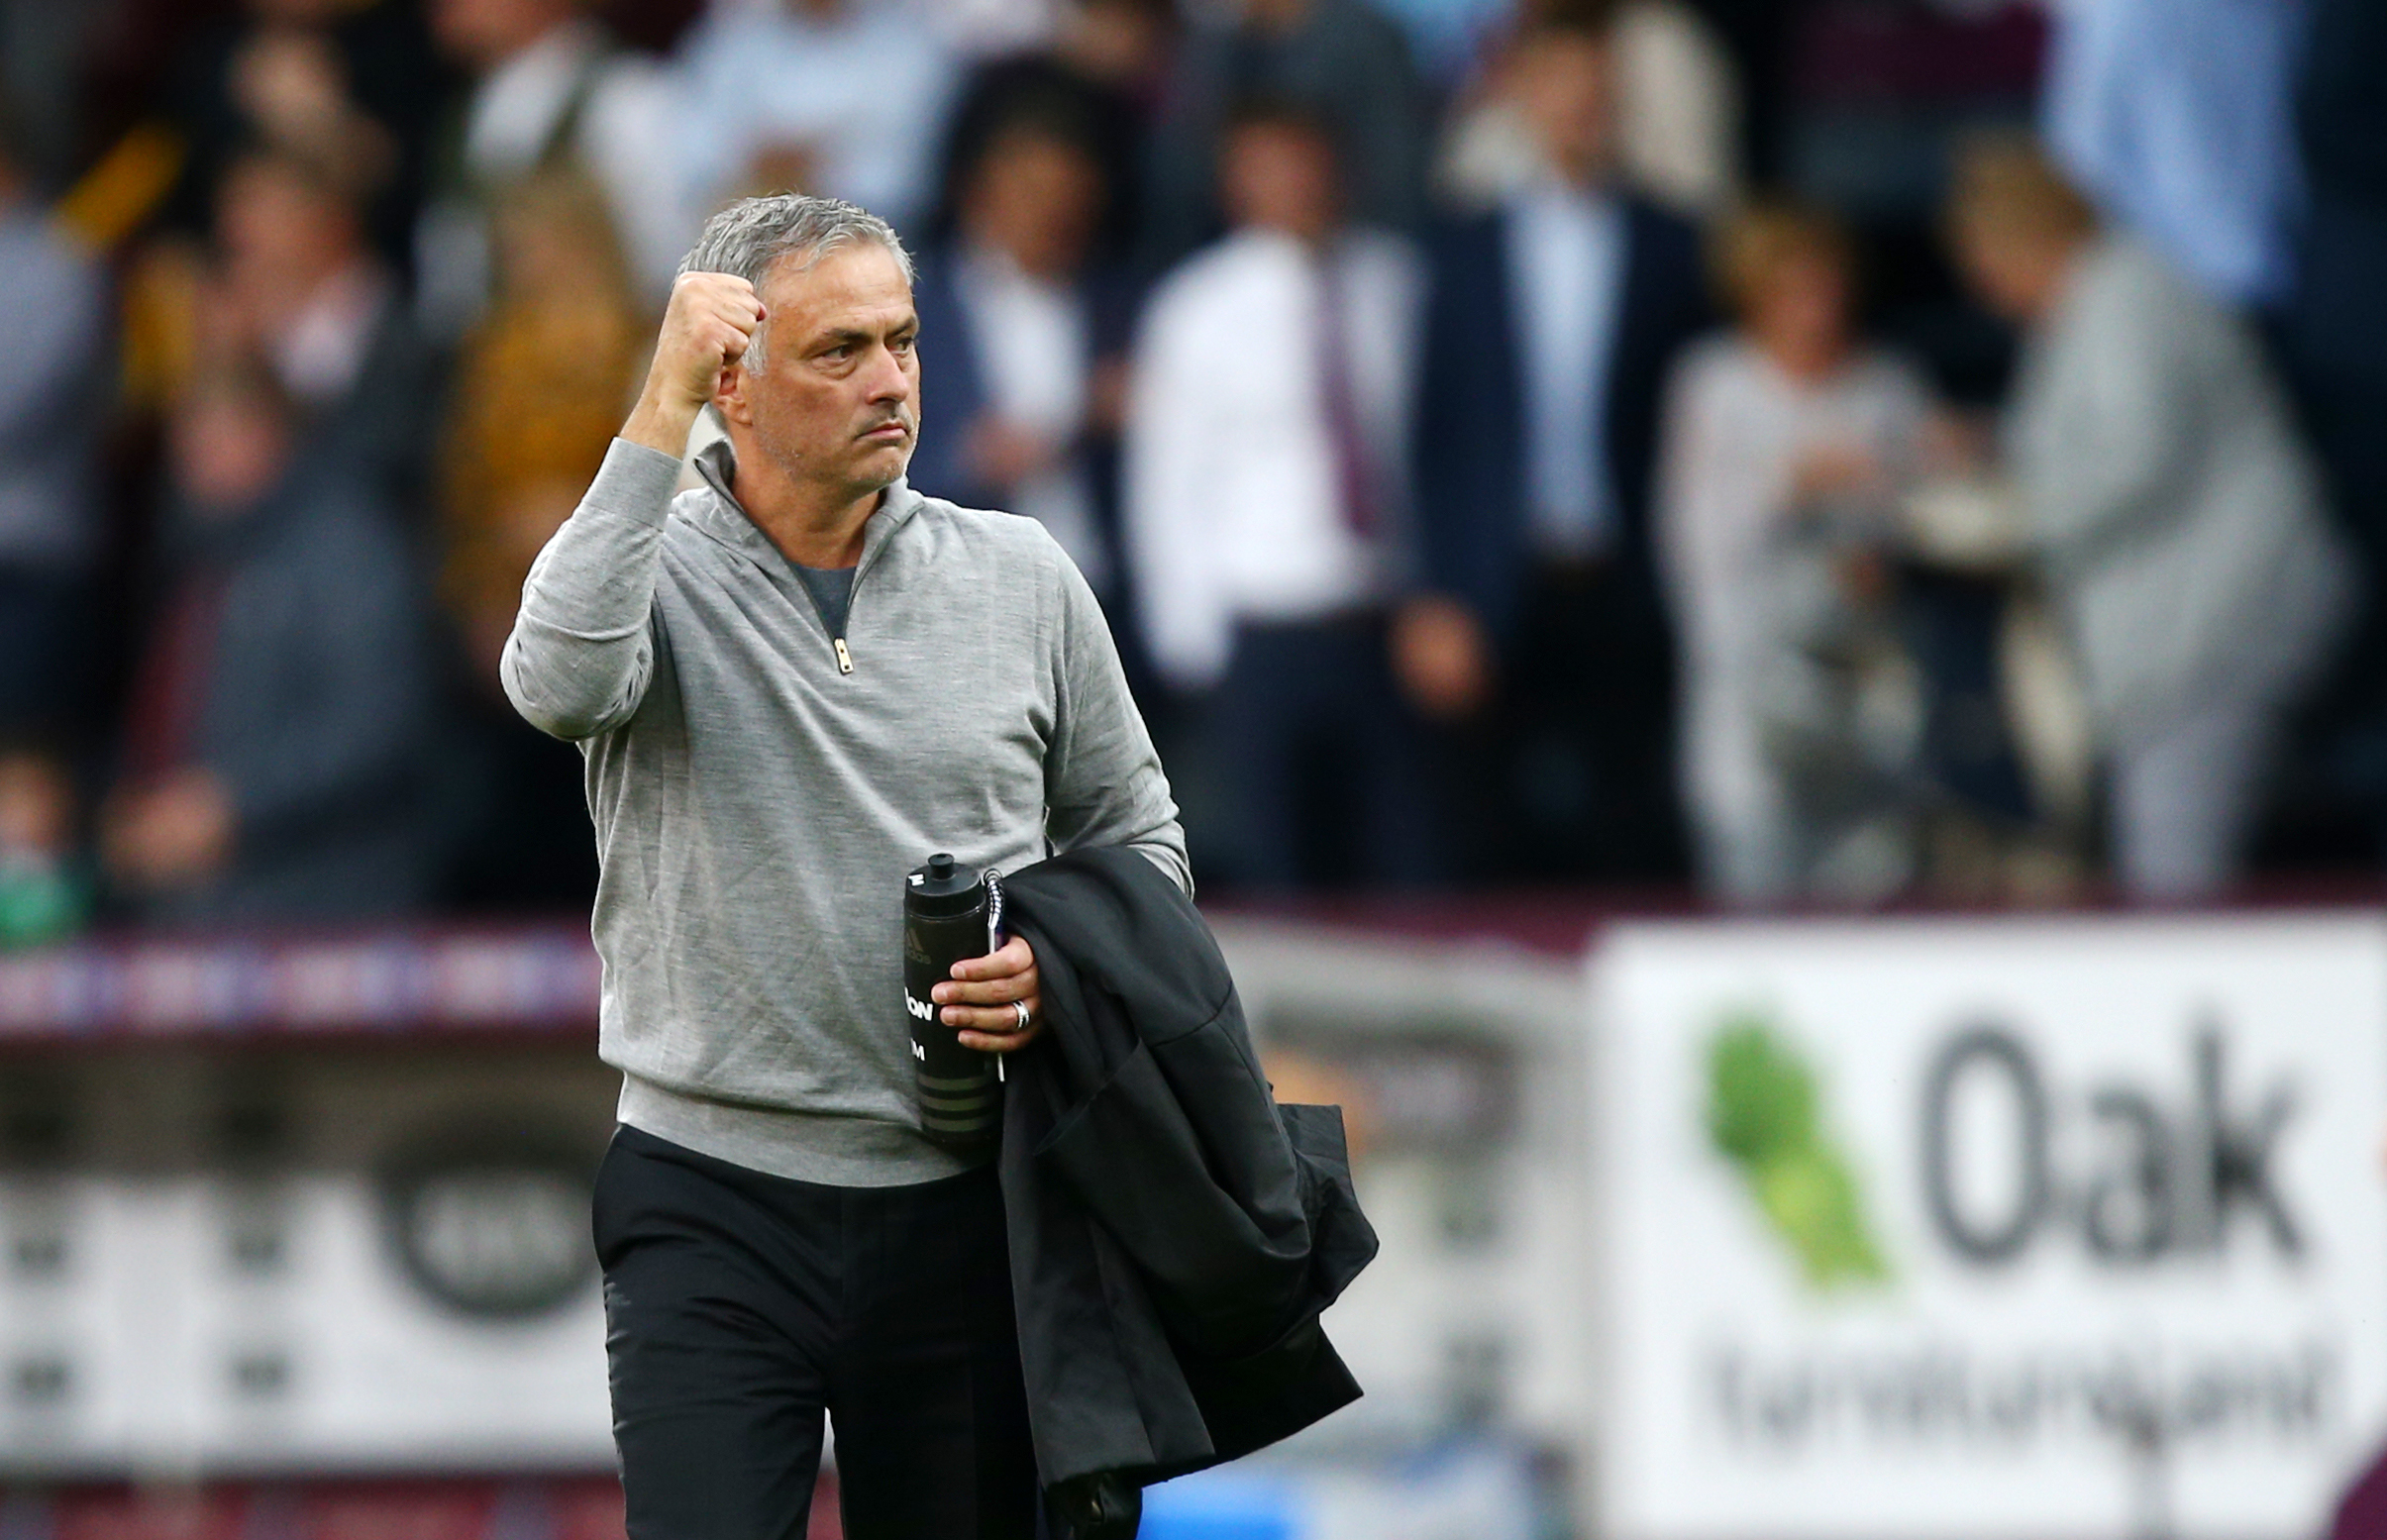 Mourinho would have been a lot happier with his side's performance this weekend. Image: PA Images